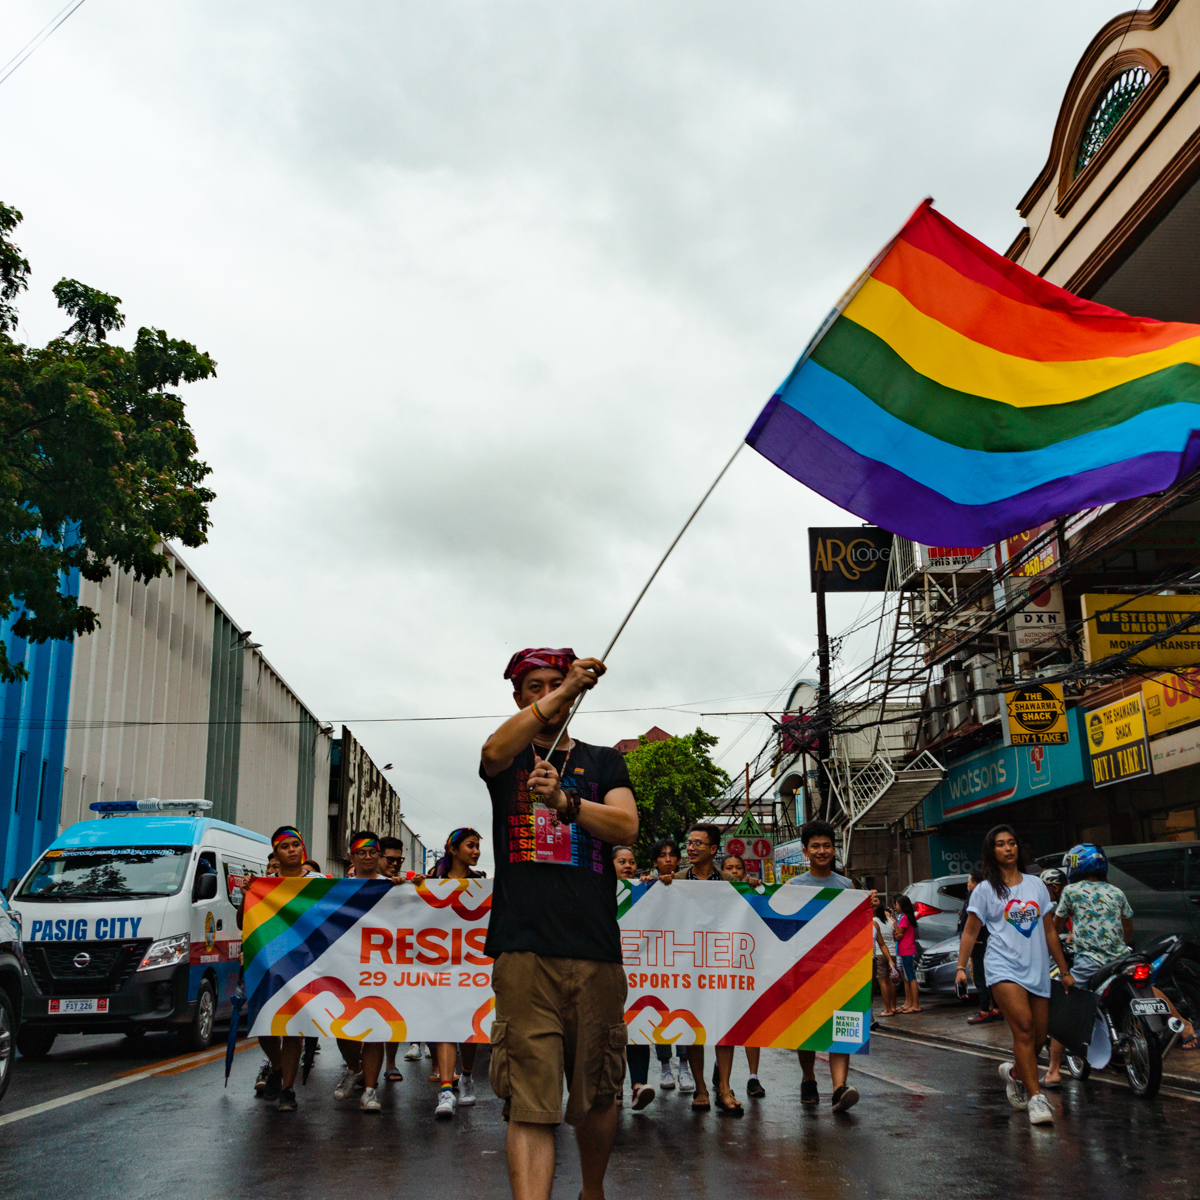 Image: A wide shot of the front of a parade. A Pride March marshal raises a rainbow flag, followed by a large crowd holding a tarpaulin that reads 'RESIST TOGETHER'.